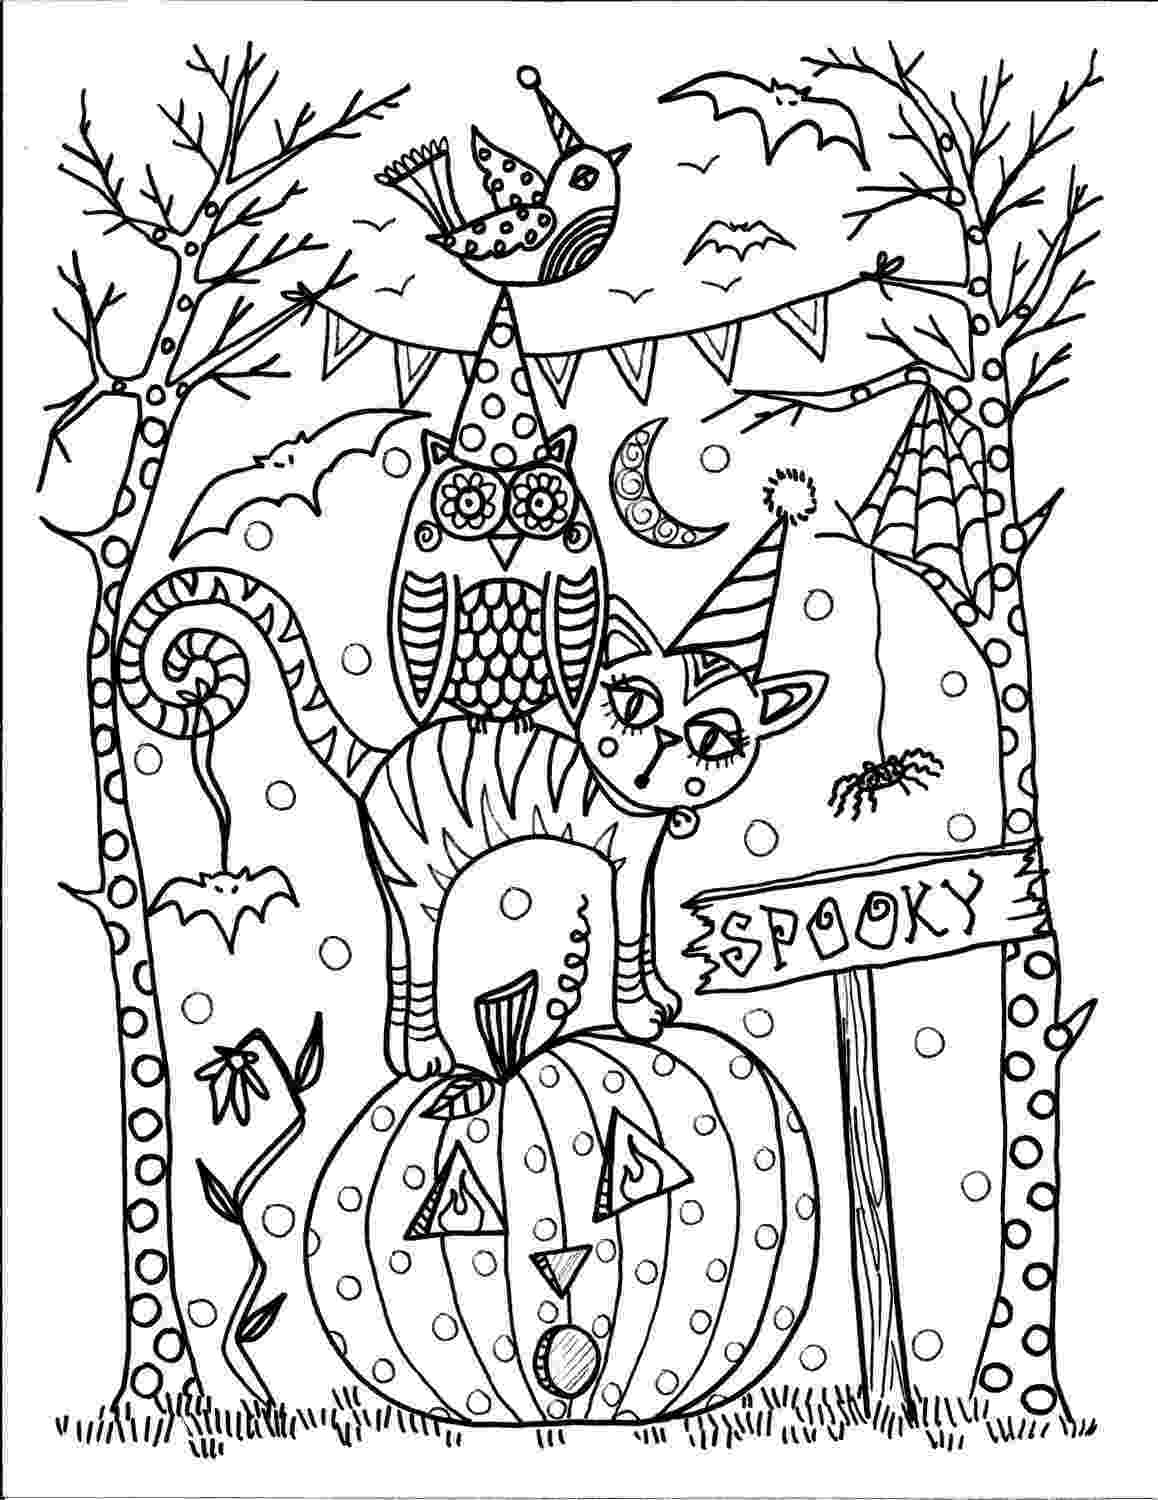 colouring pages for halloween free printable free halloween coloring pages for kids or for the kid in you pages for printable colouring halloween free